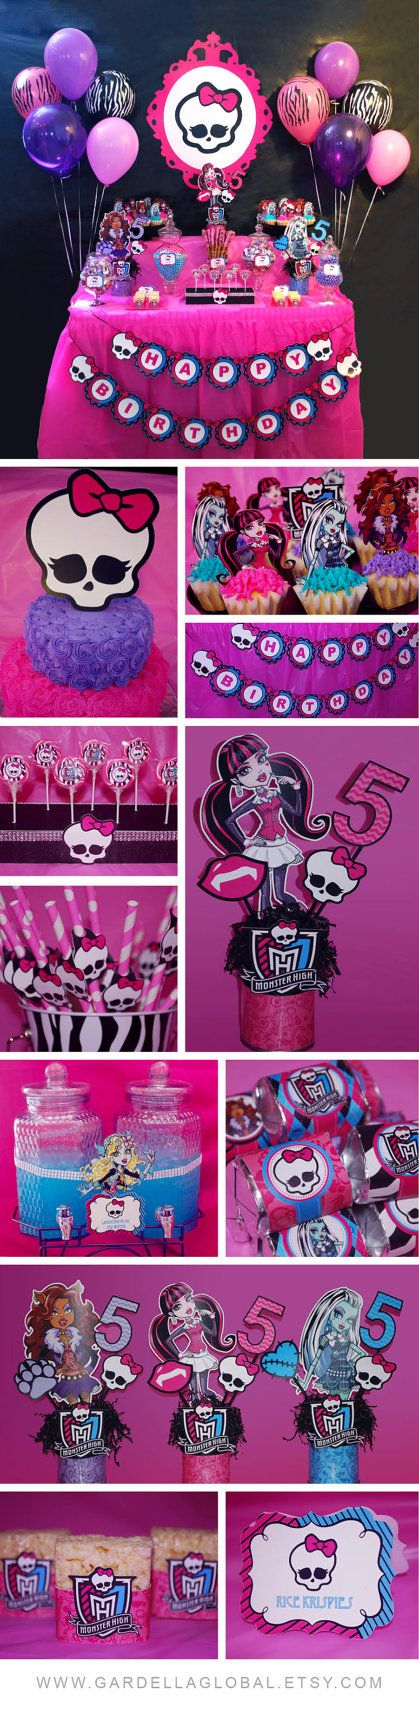 Monster High Invitation Monster High invite por GardellaGlobal